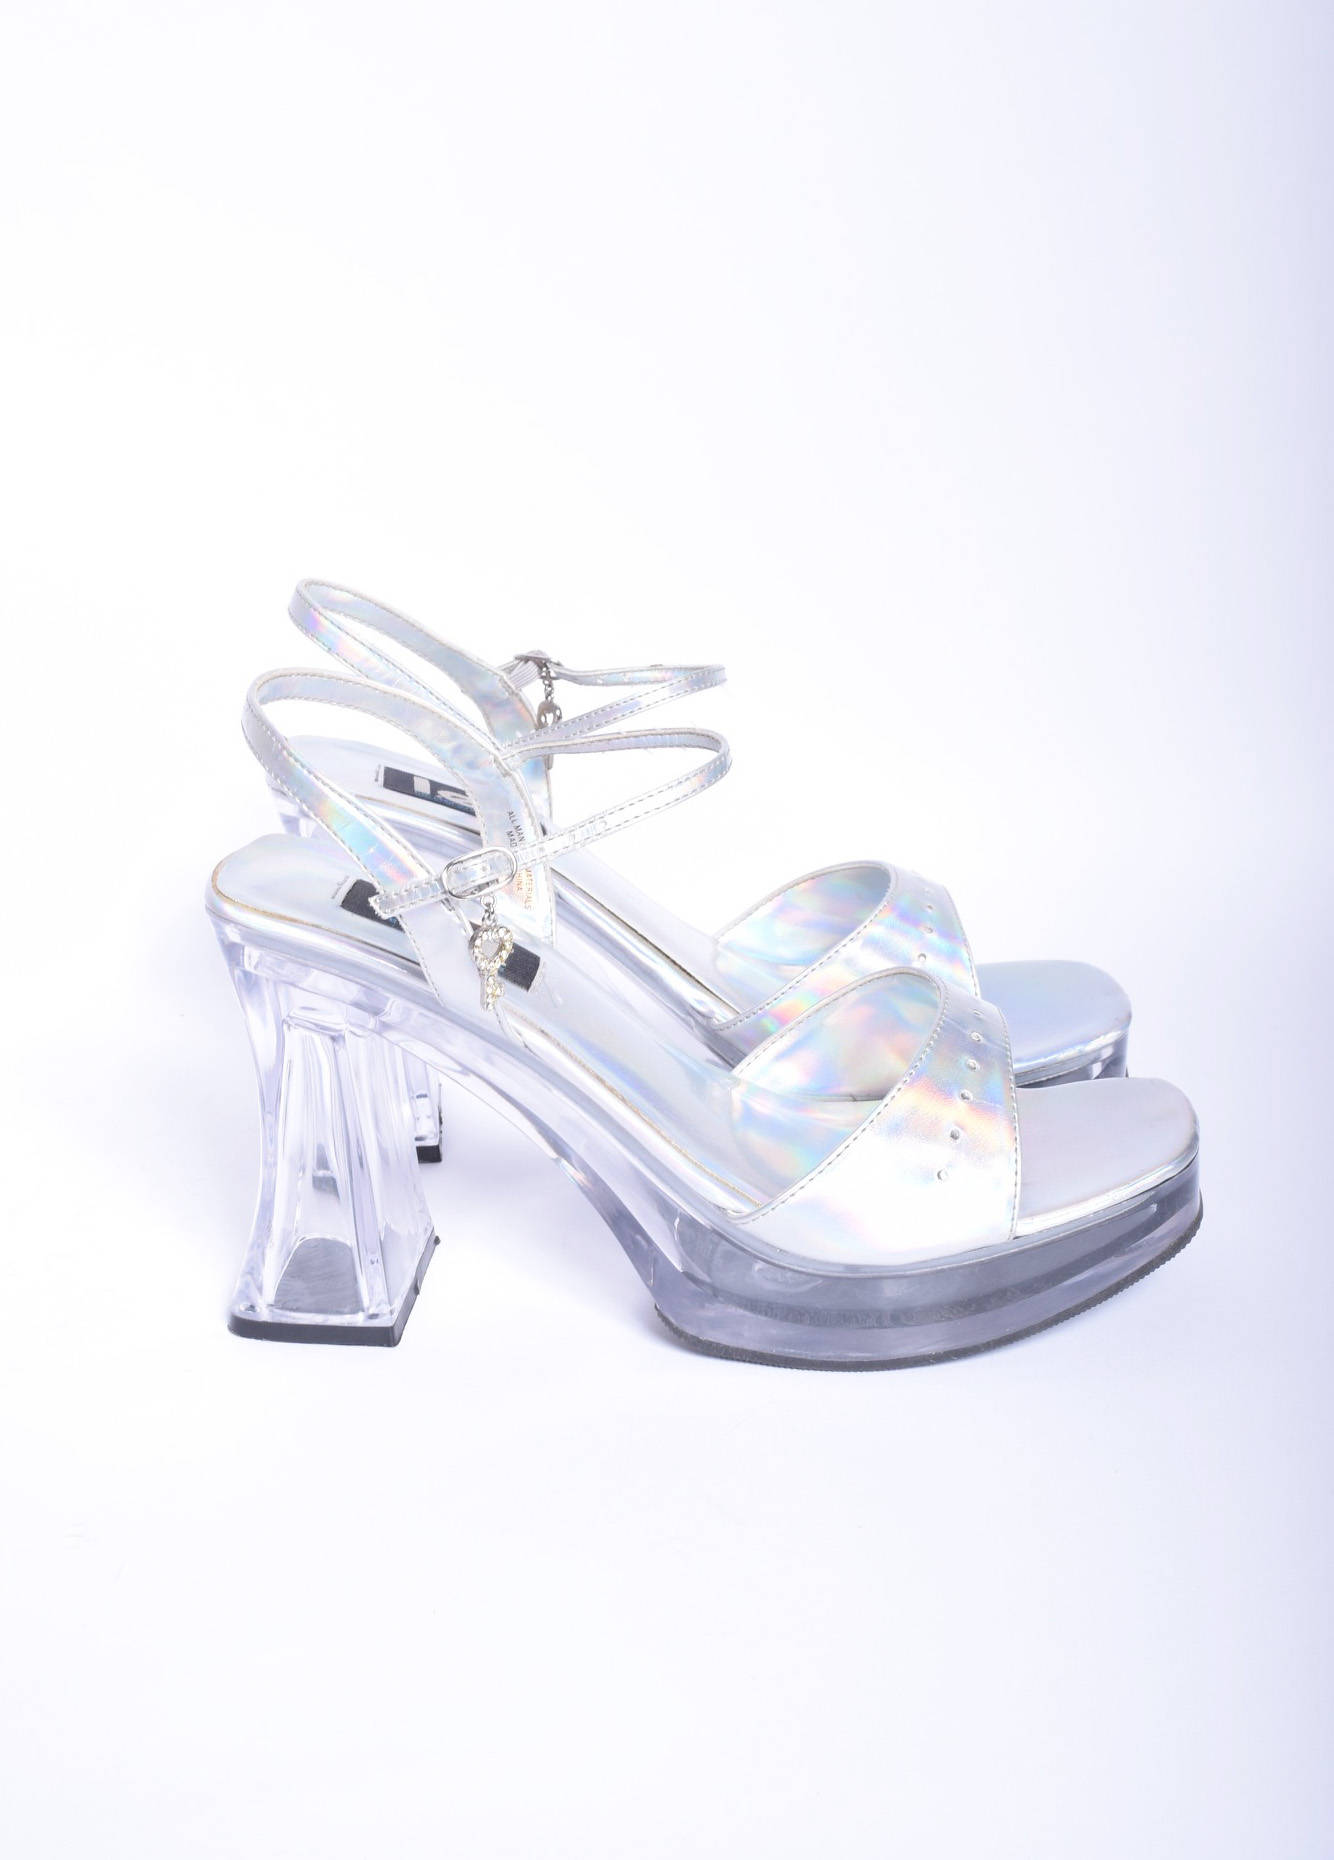 Vintage 90s Transparent Heels with Iridescent Colour from Black Pagan Vintage